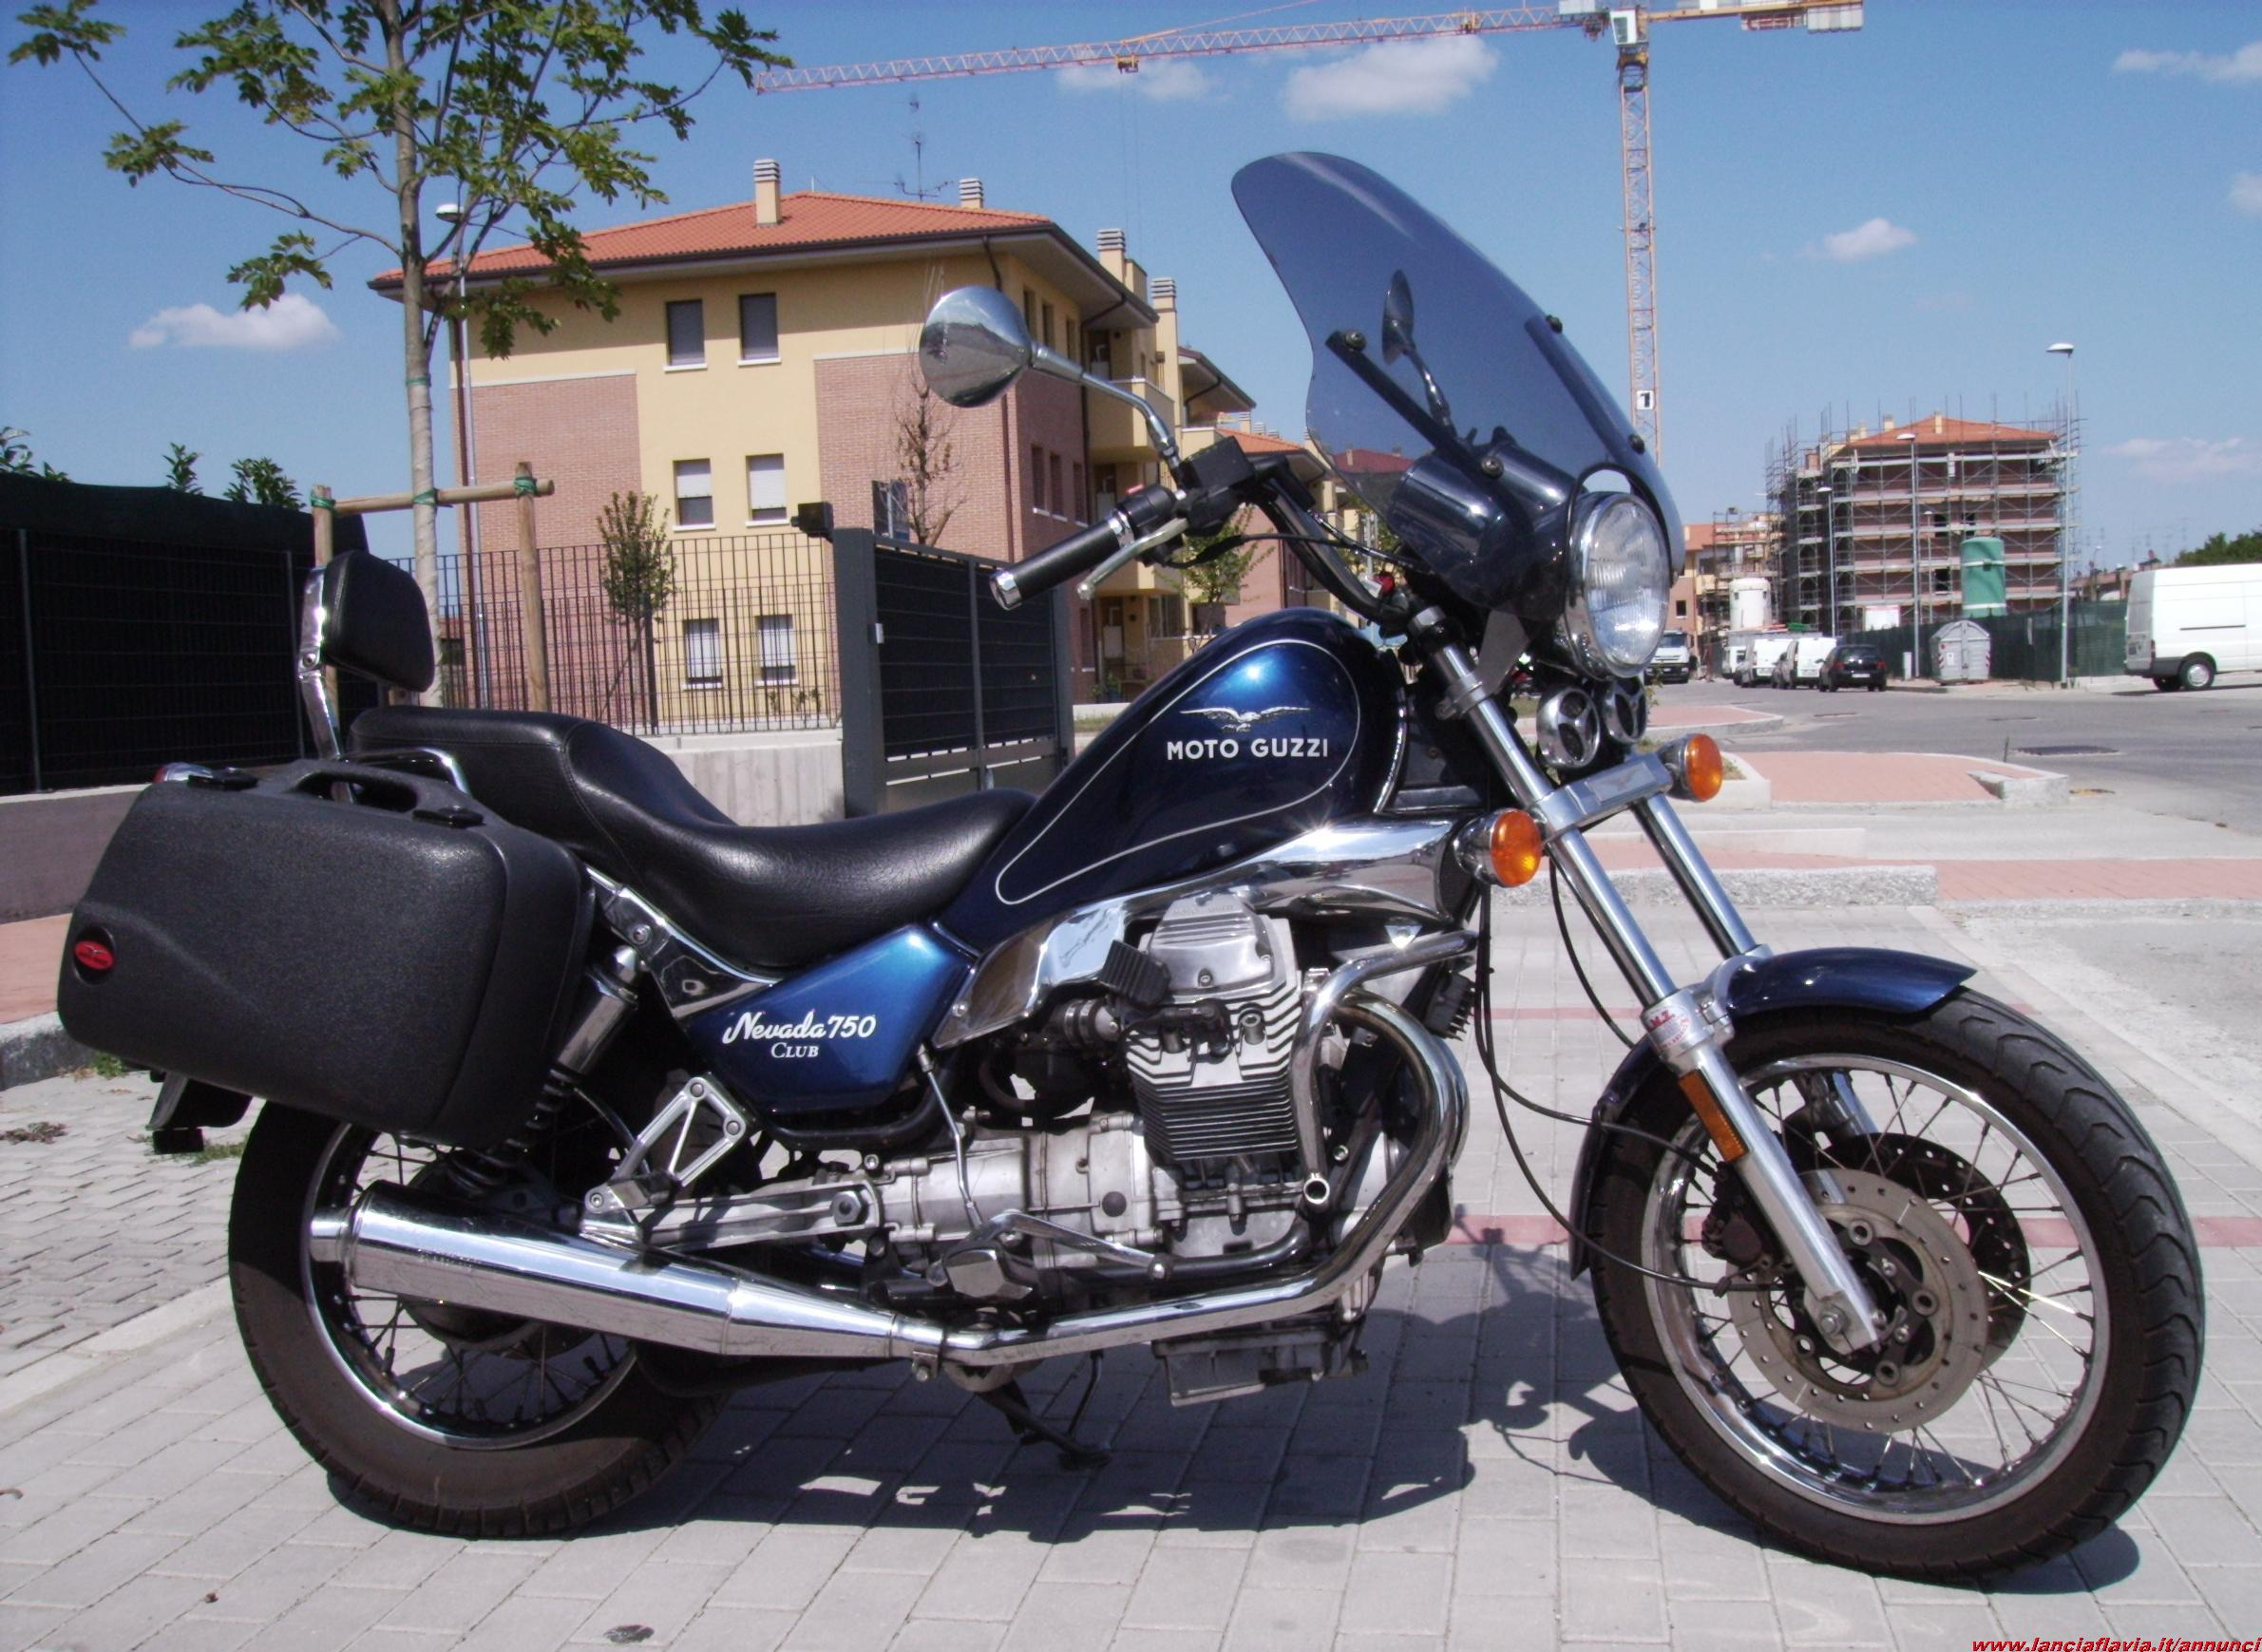 Moto Guzzi Nevada 750 Club 1999 #3